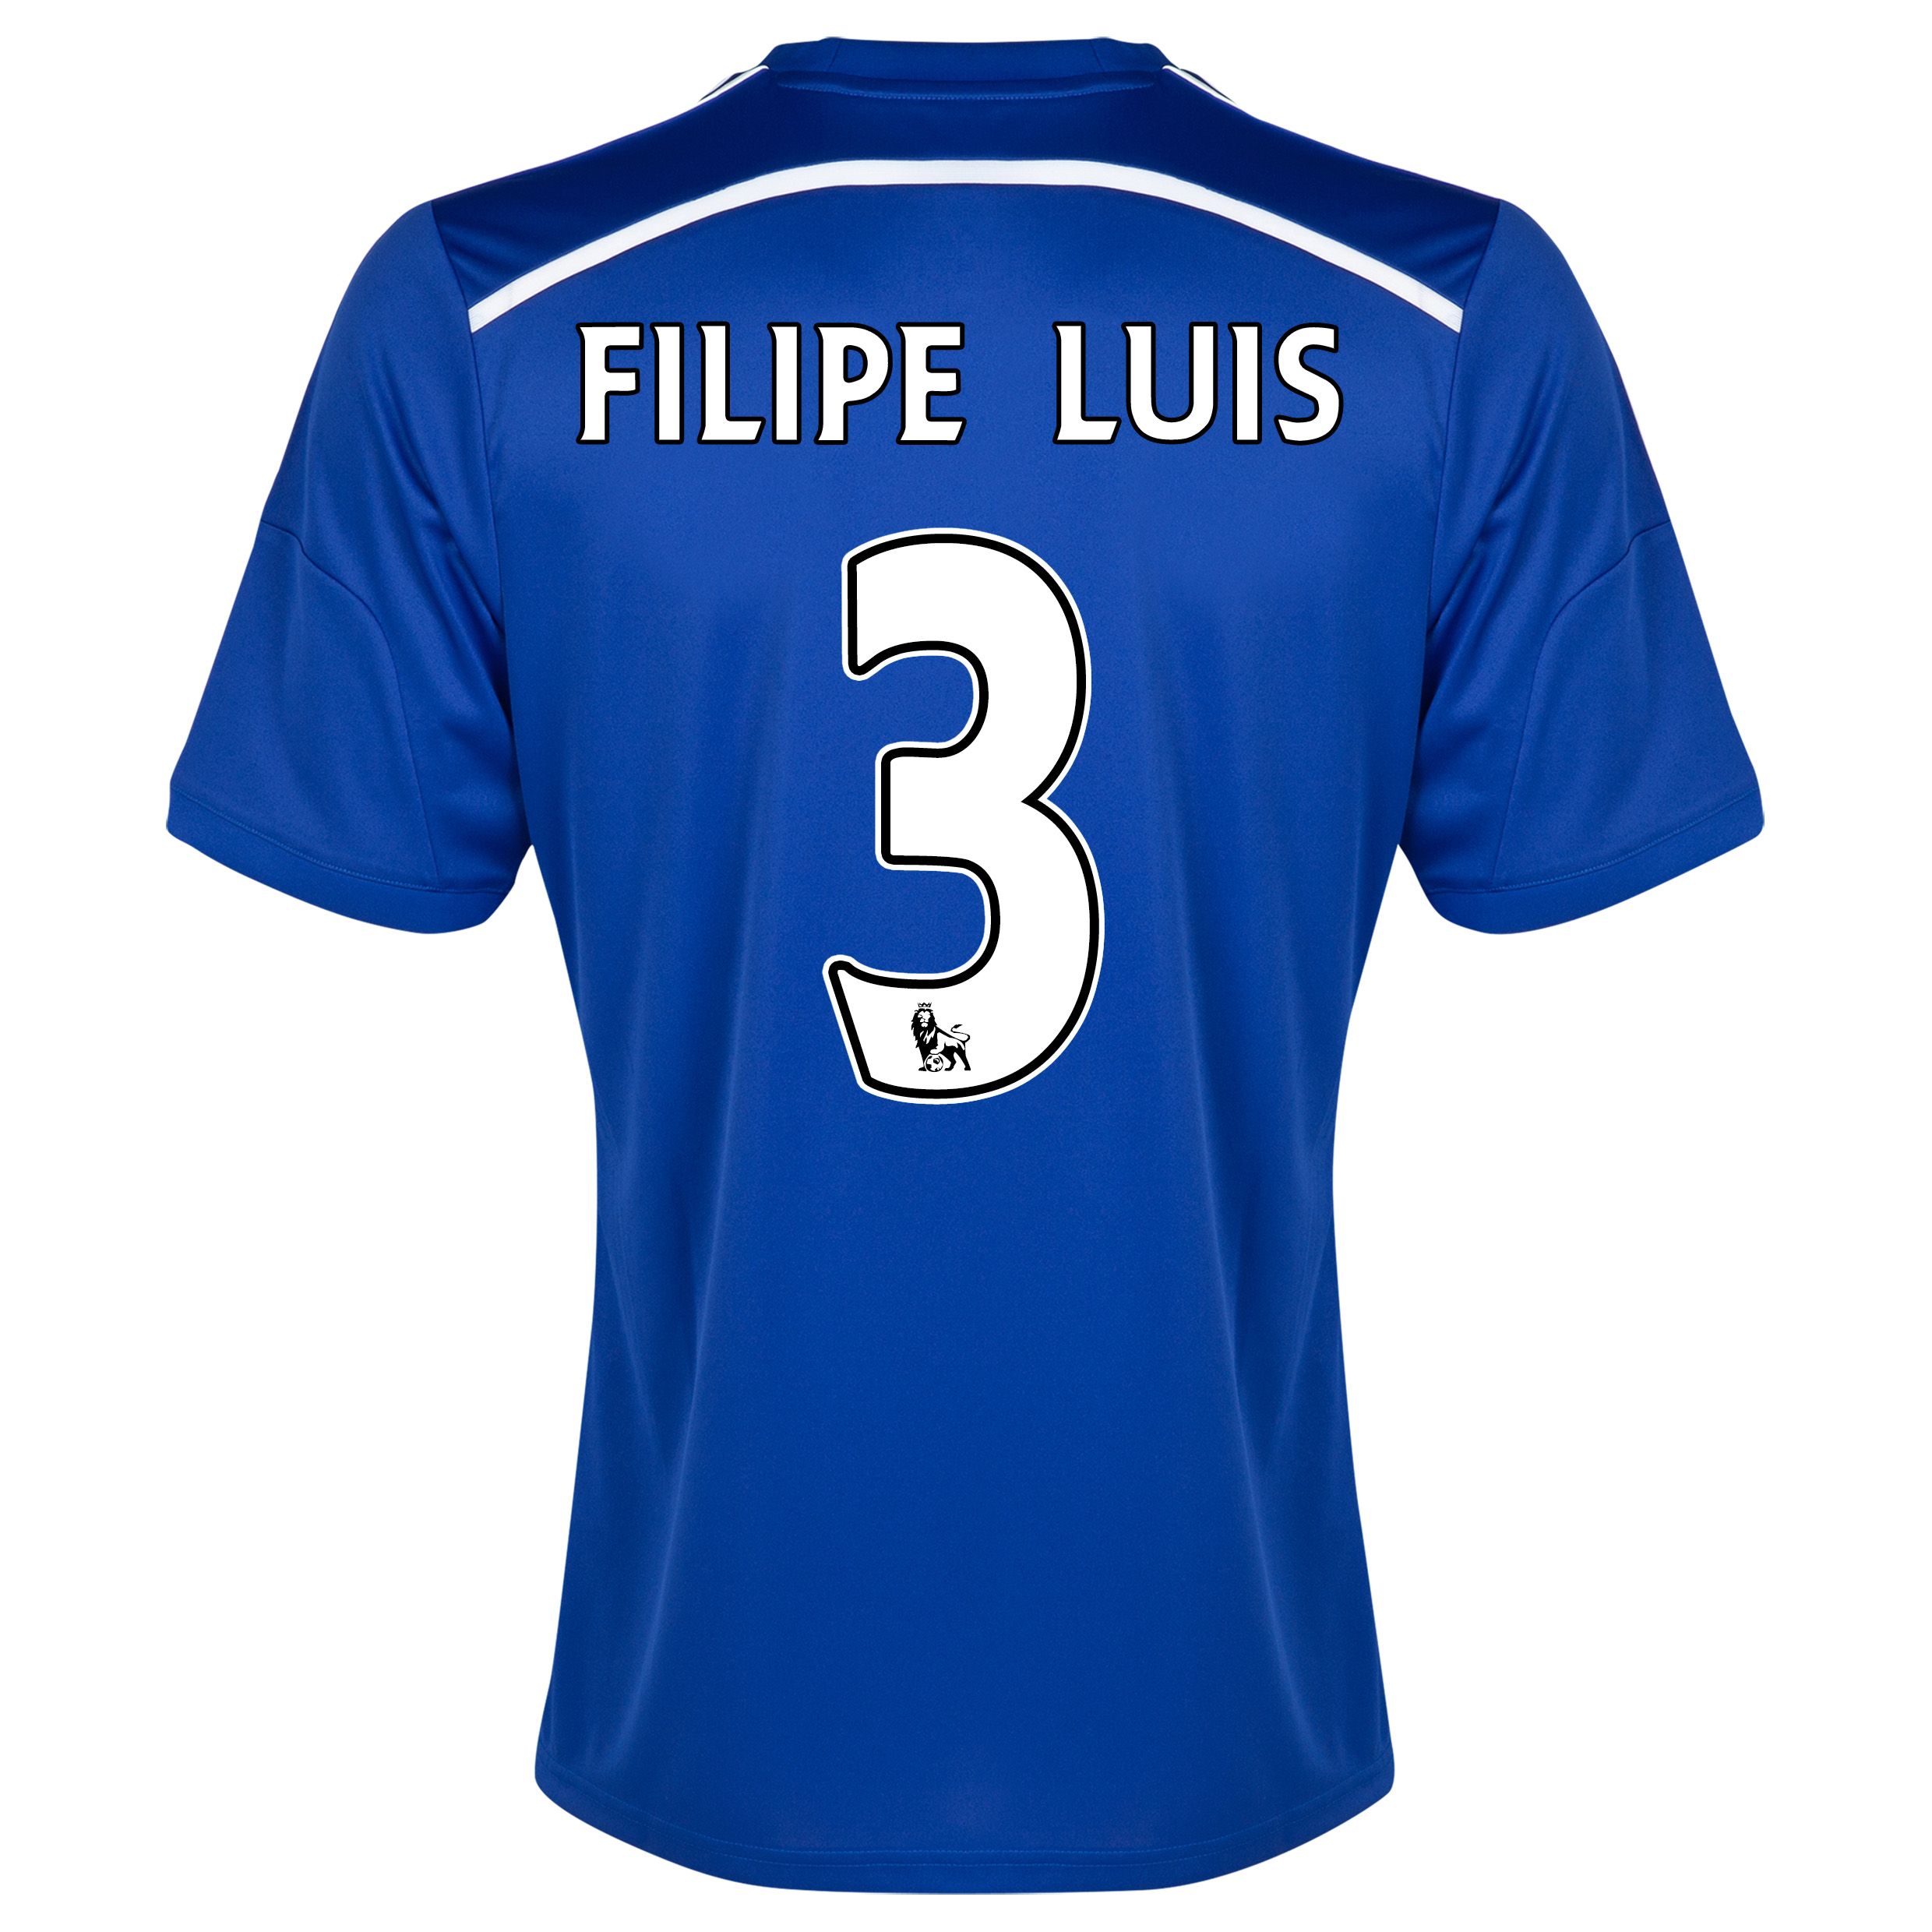 Chelsea Home Shirt 2014/15 - Outsize with FILIPE LUIS 3 printing